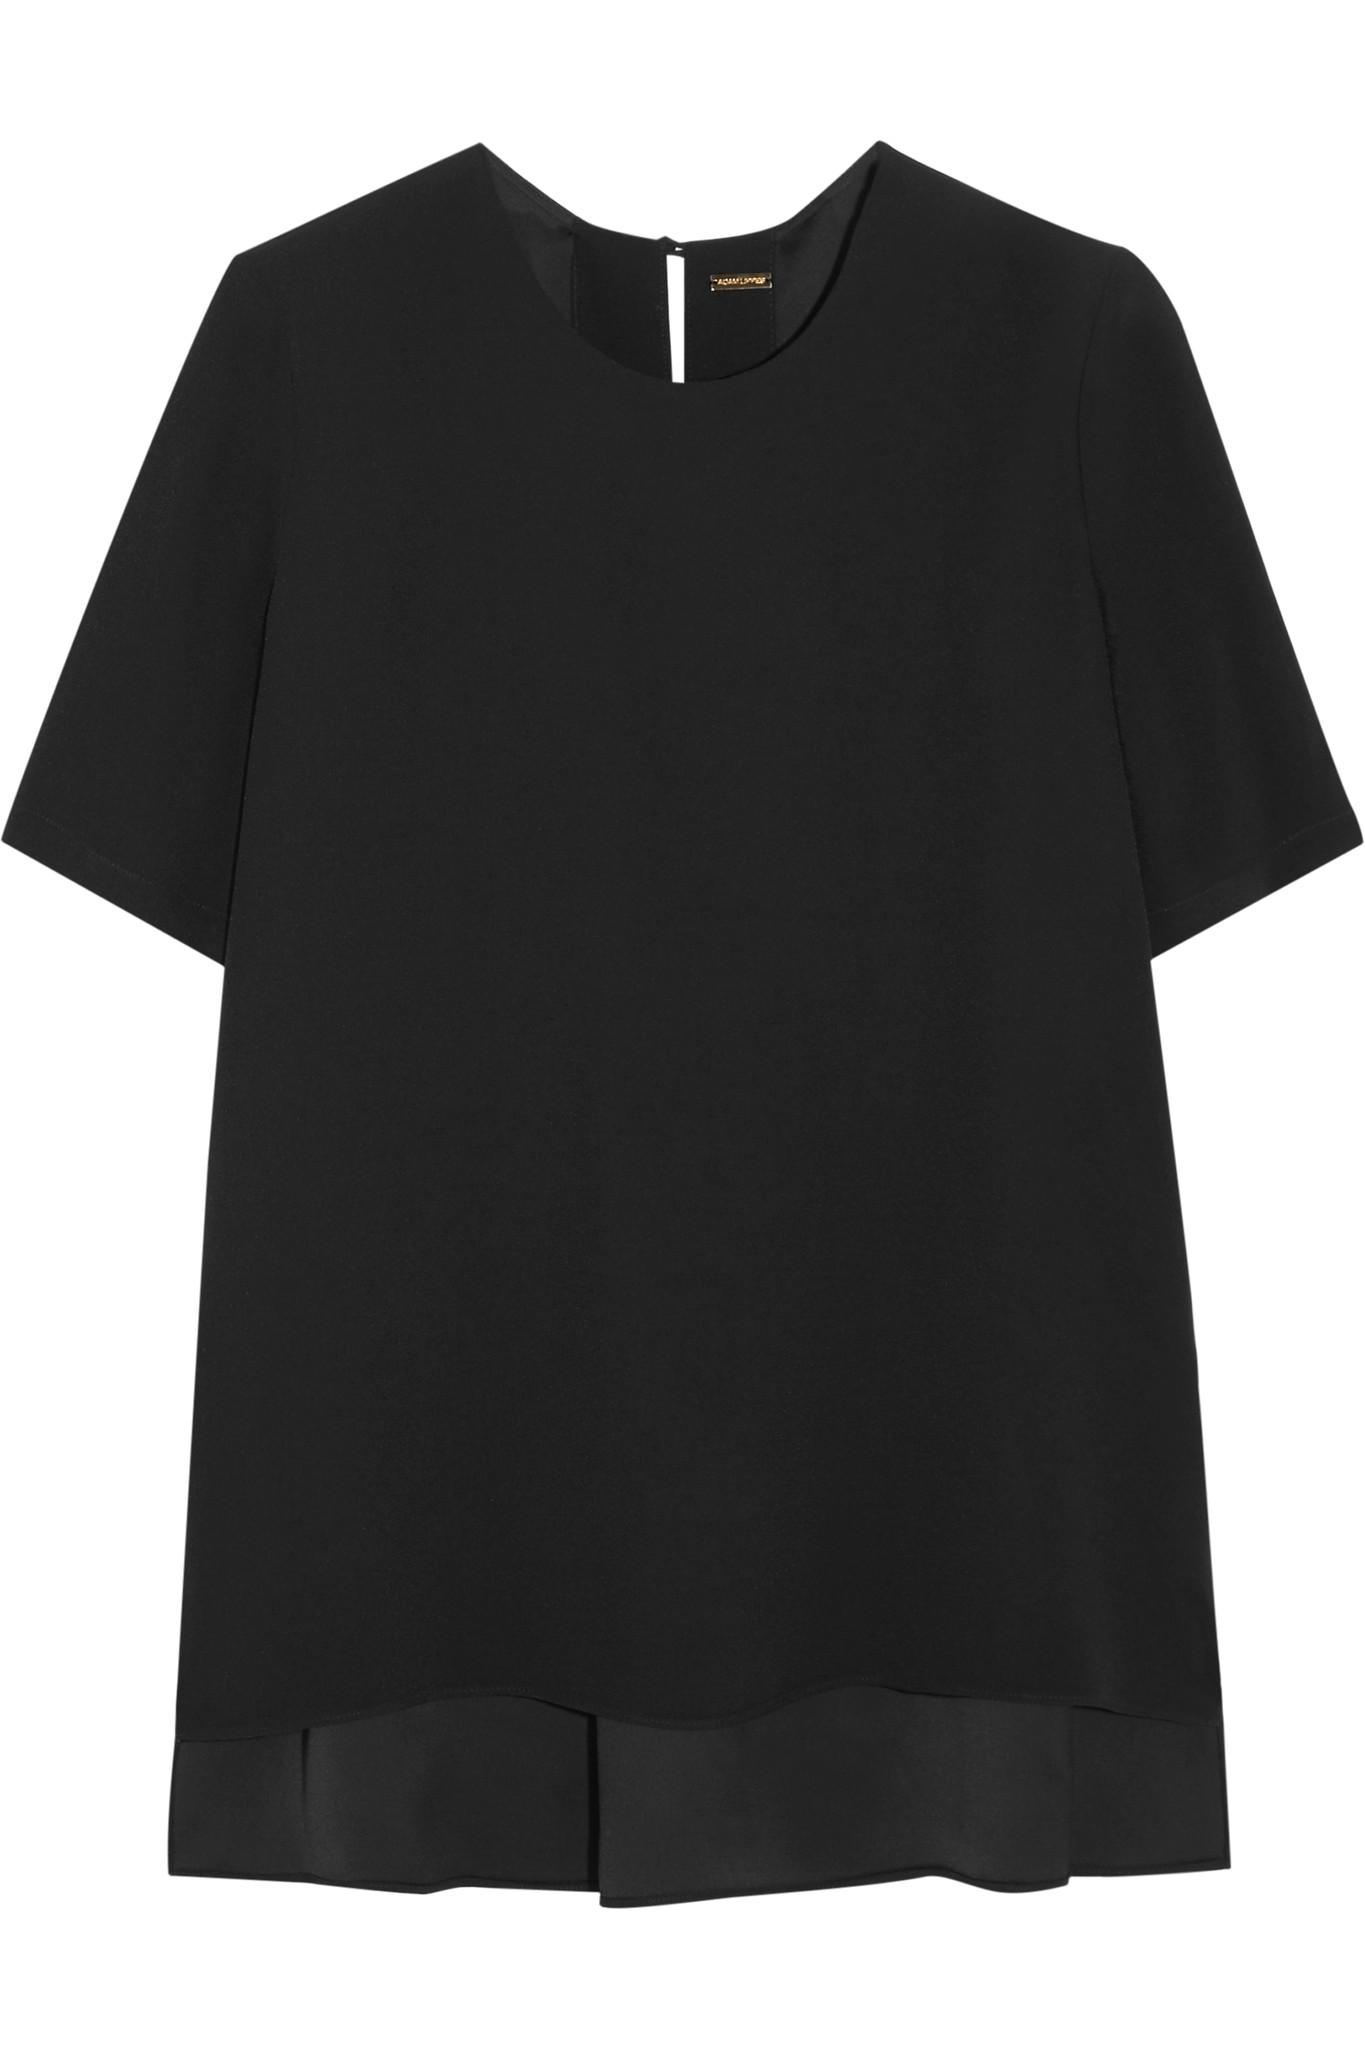 Adam lippes crepe t shirt in black save 17 lyst for Adam lippes t shirt